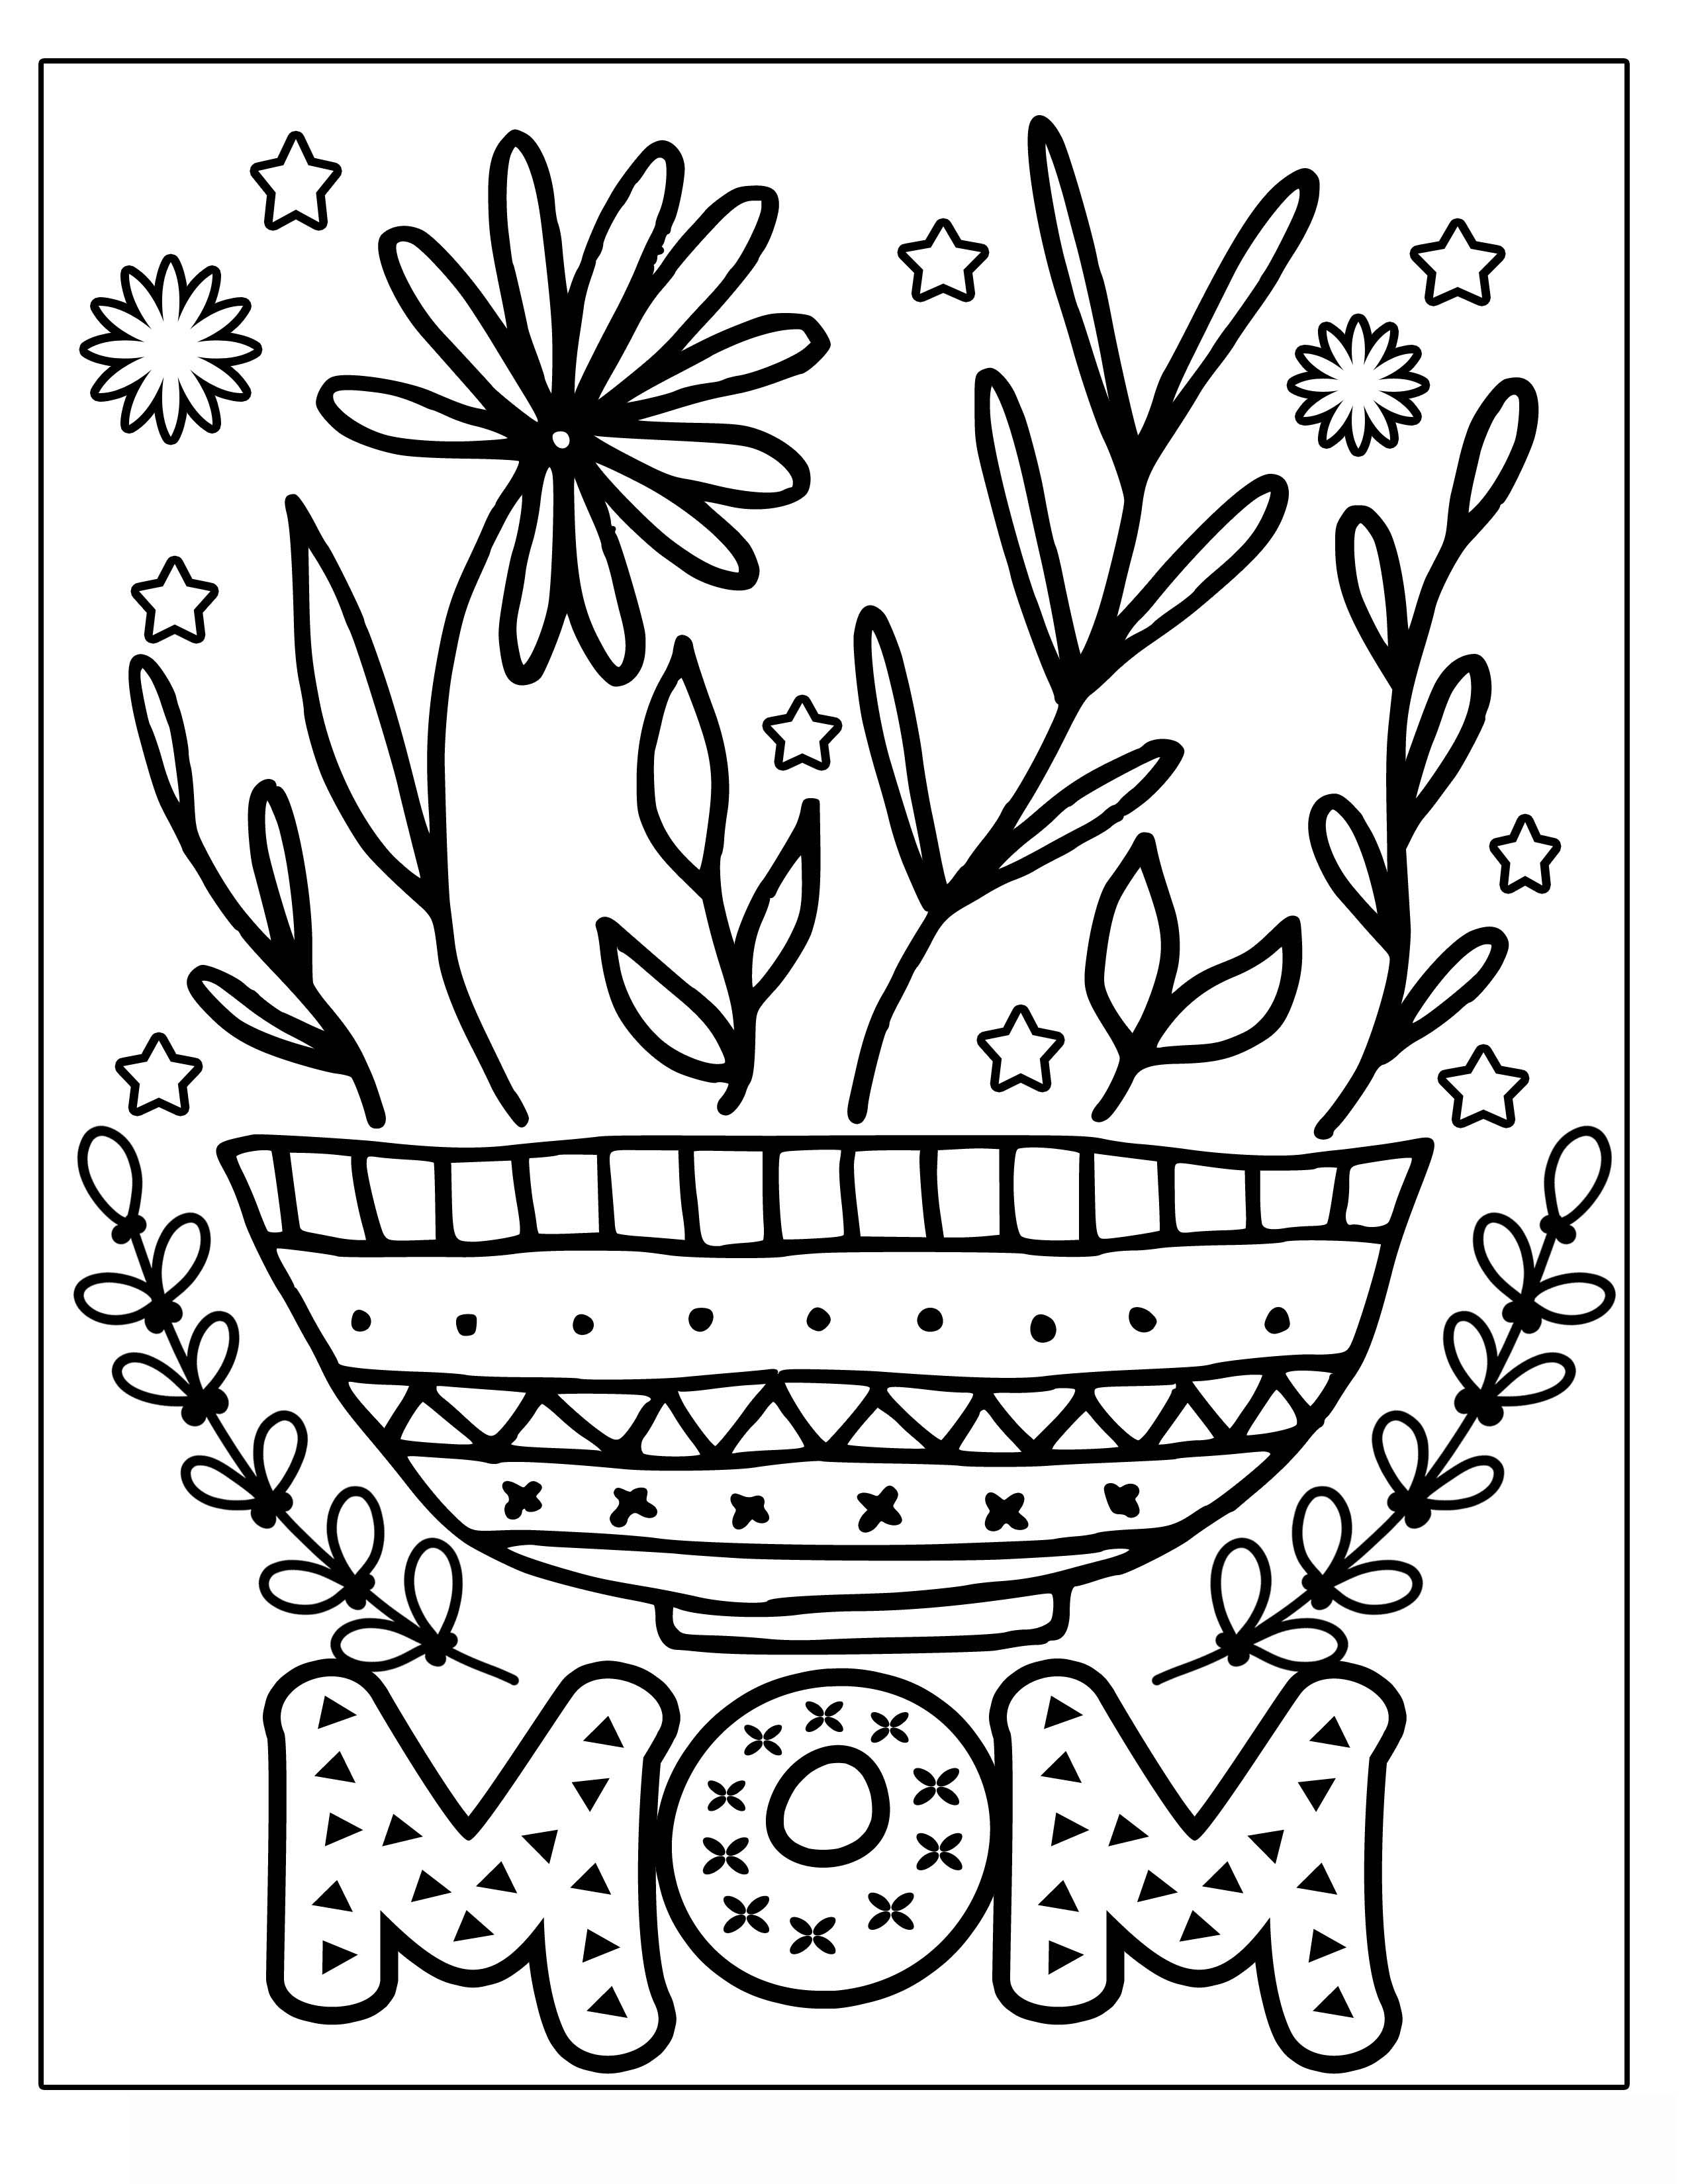 MOTHER'S DAY flower with vines and frills Clipart Coloring Pages for Kids Adults Art Activities Line Art